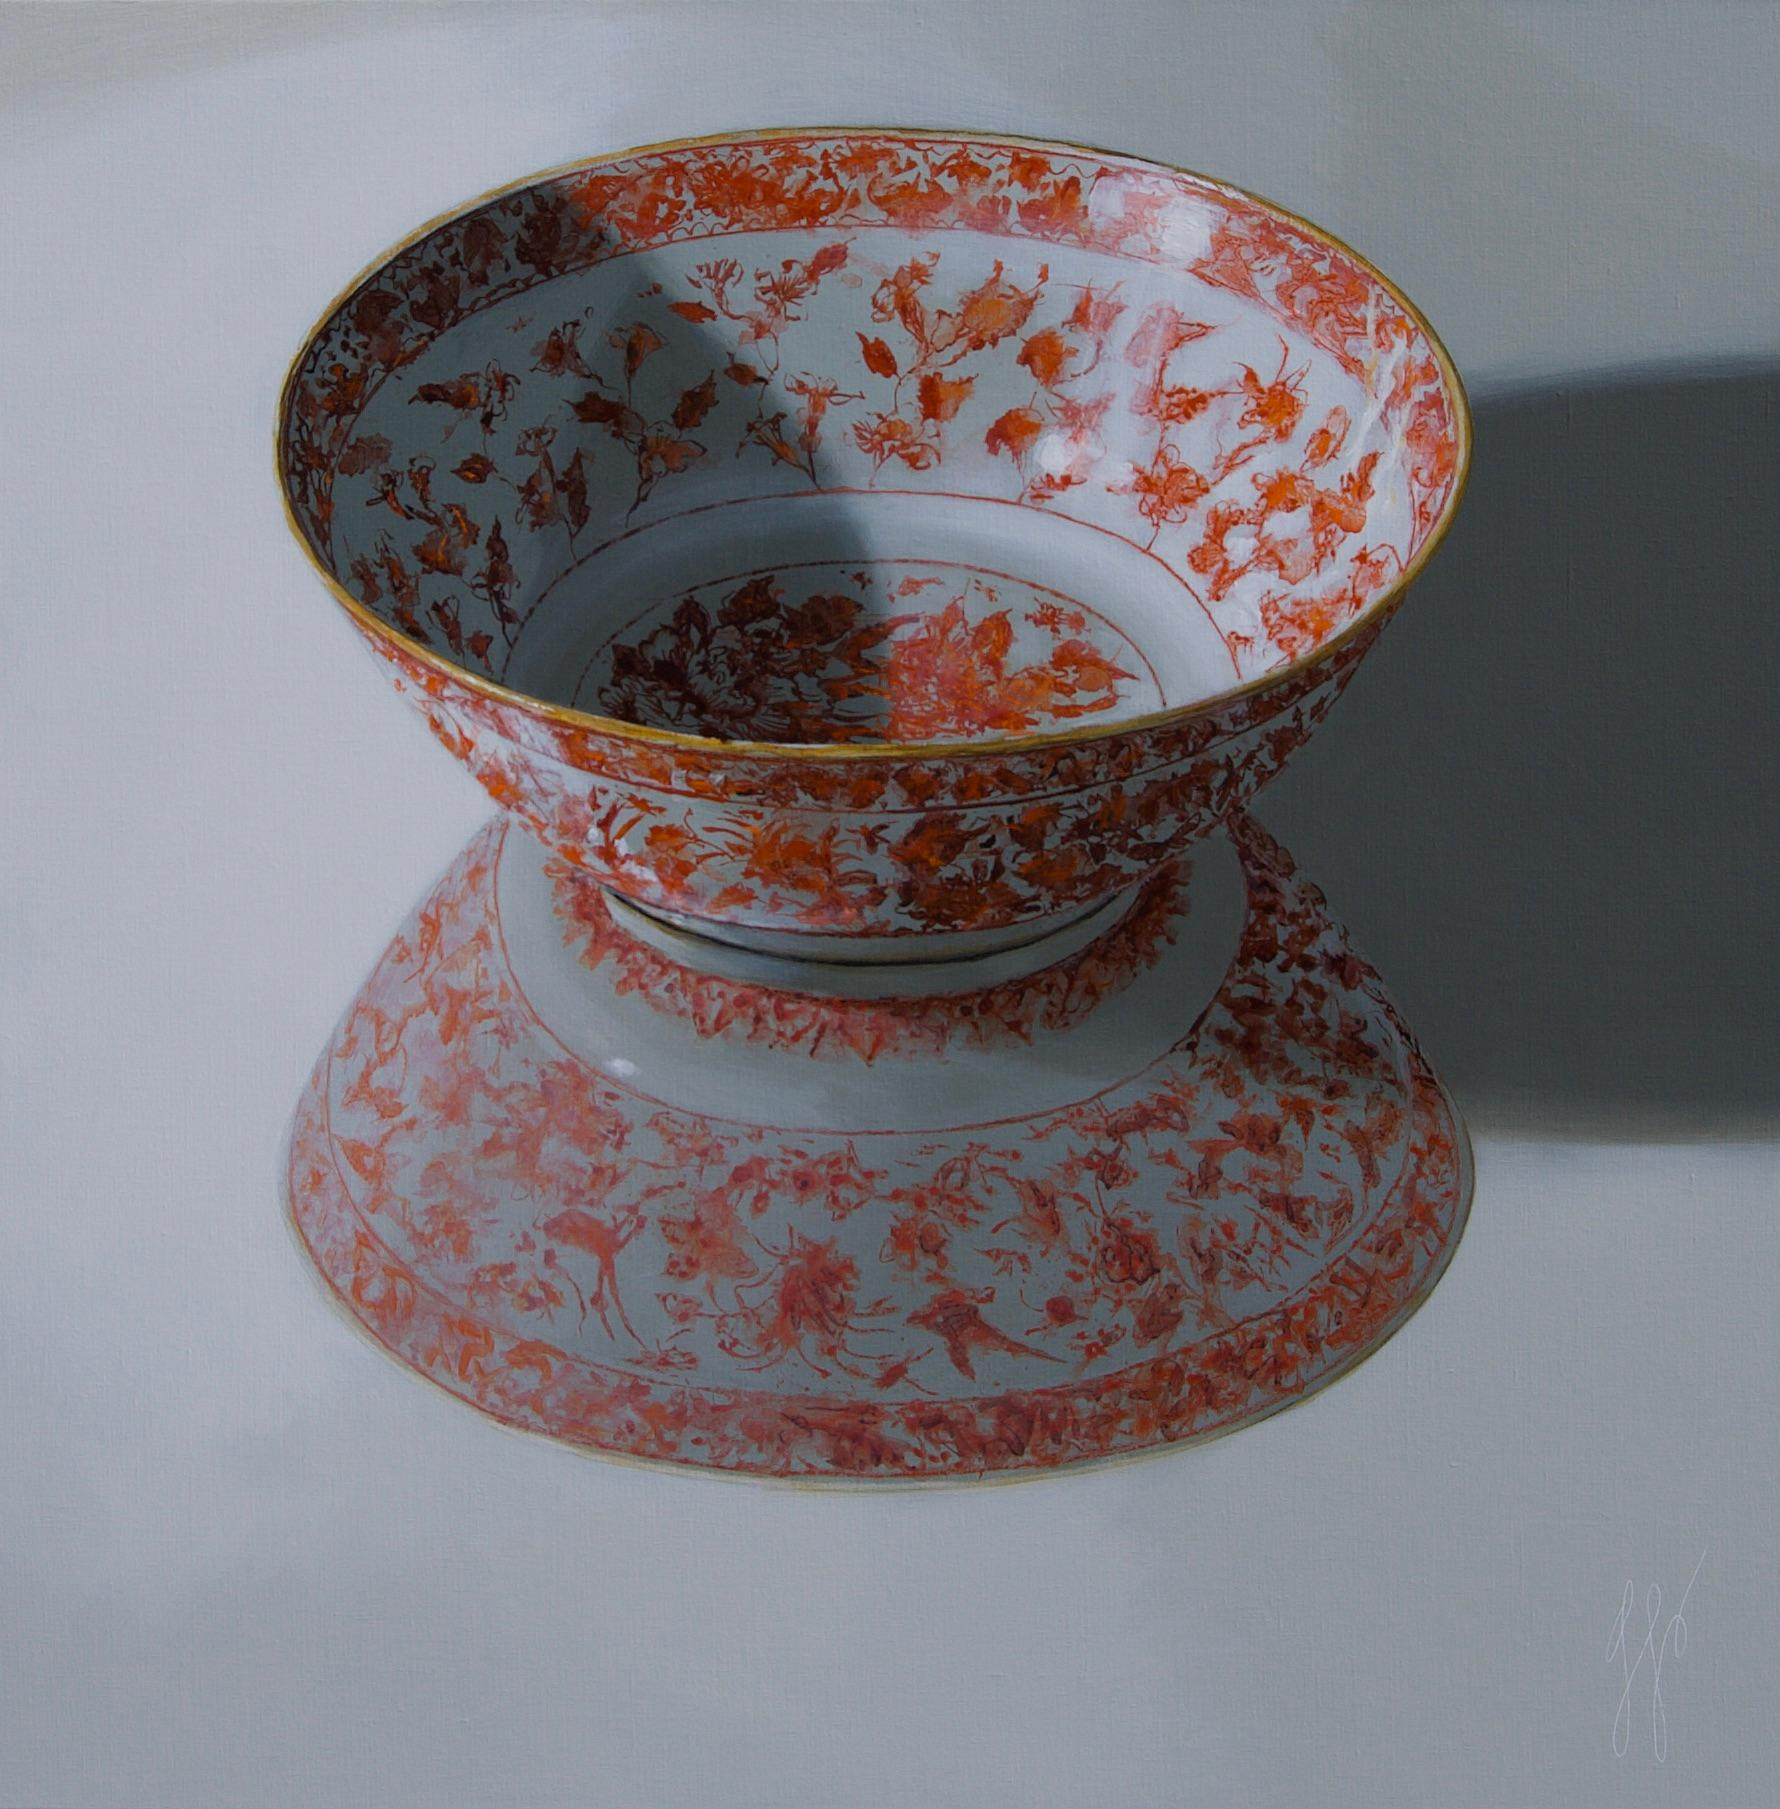 ''Orange bowl reflected in the Light'', Contemporary Still Life with Porcelain